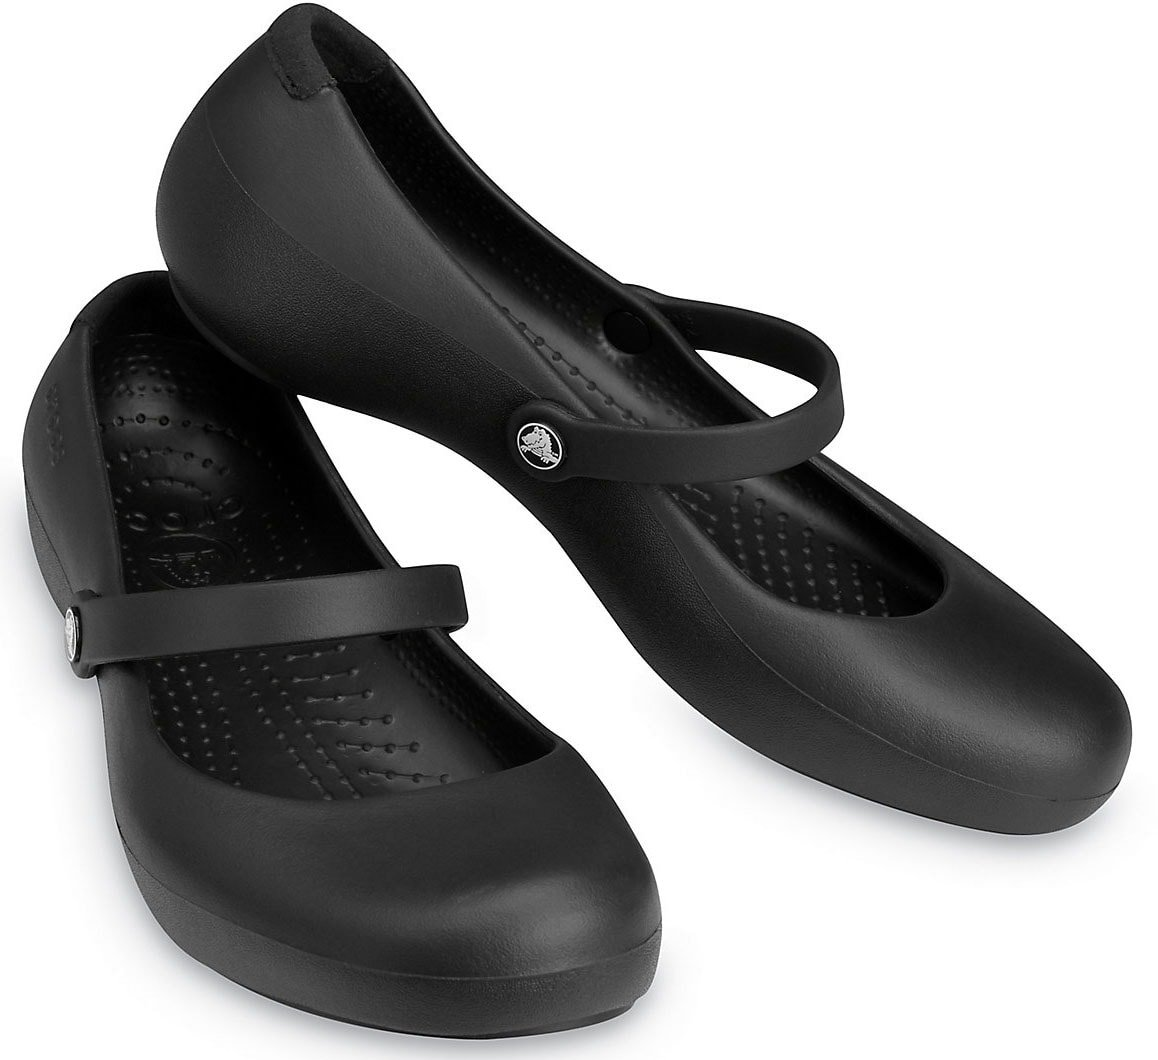 A classic and comfy pair of Crocs Mary Jane shoes for on-the-go women